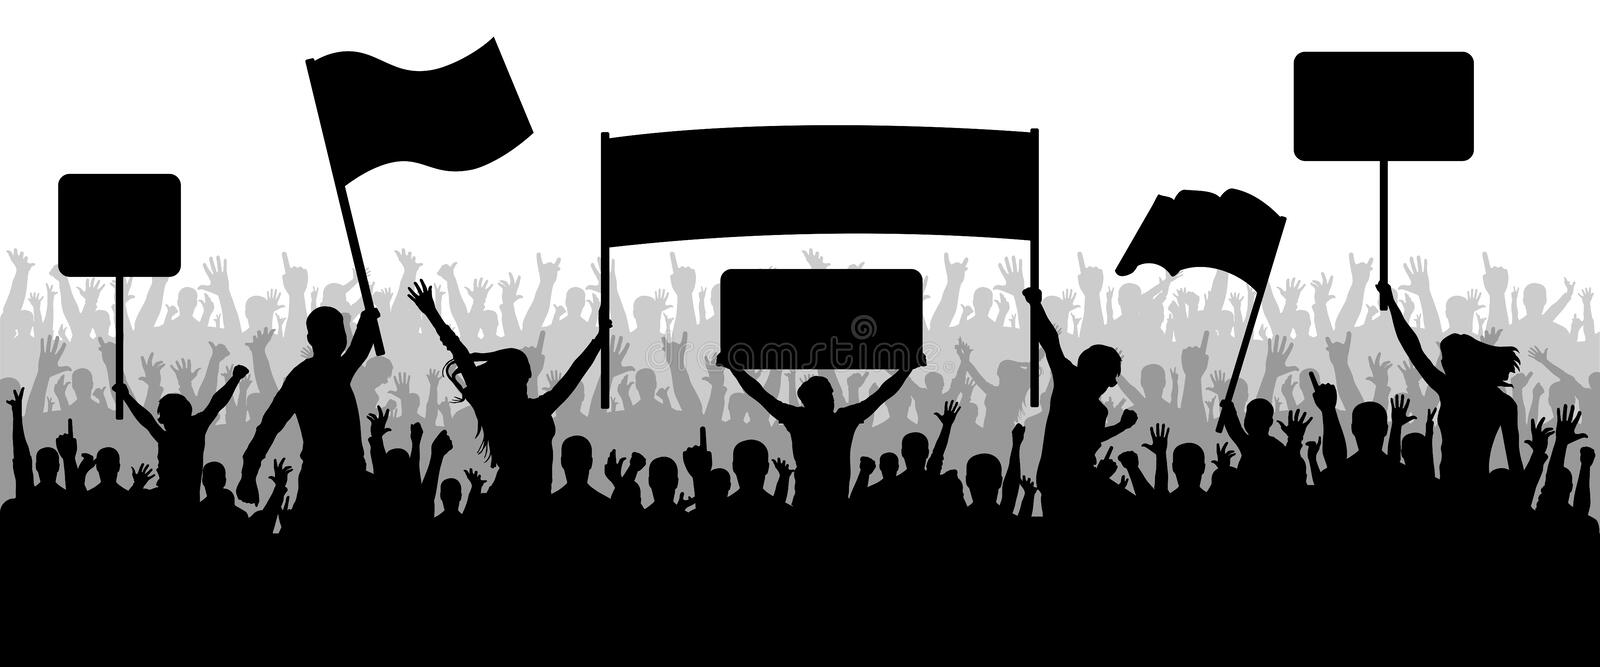 Crowd people with transparency, protesting, demonstration, silhouette. Crowd people with transparency, protesting, demonstration, silhouette royalty free illustration